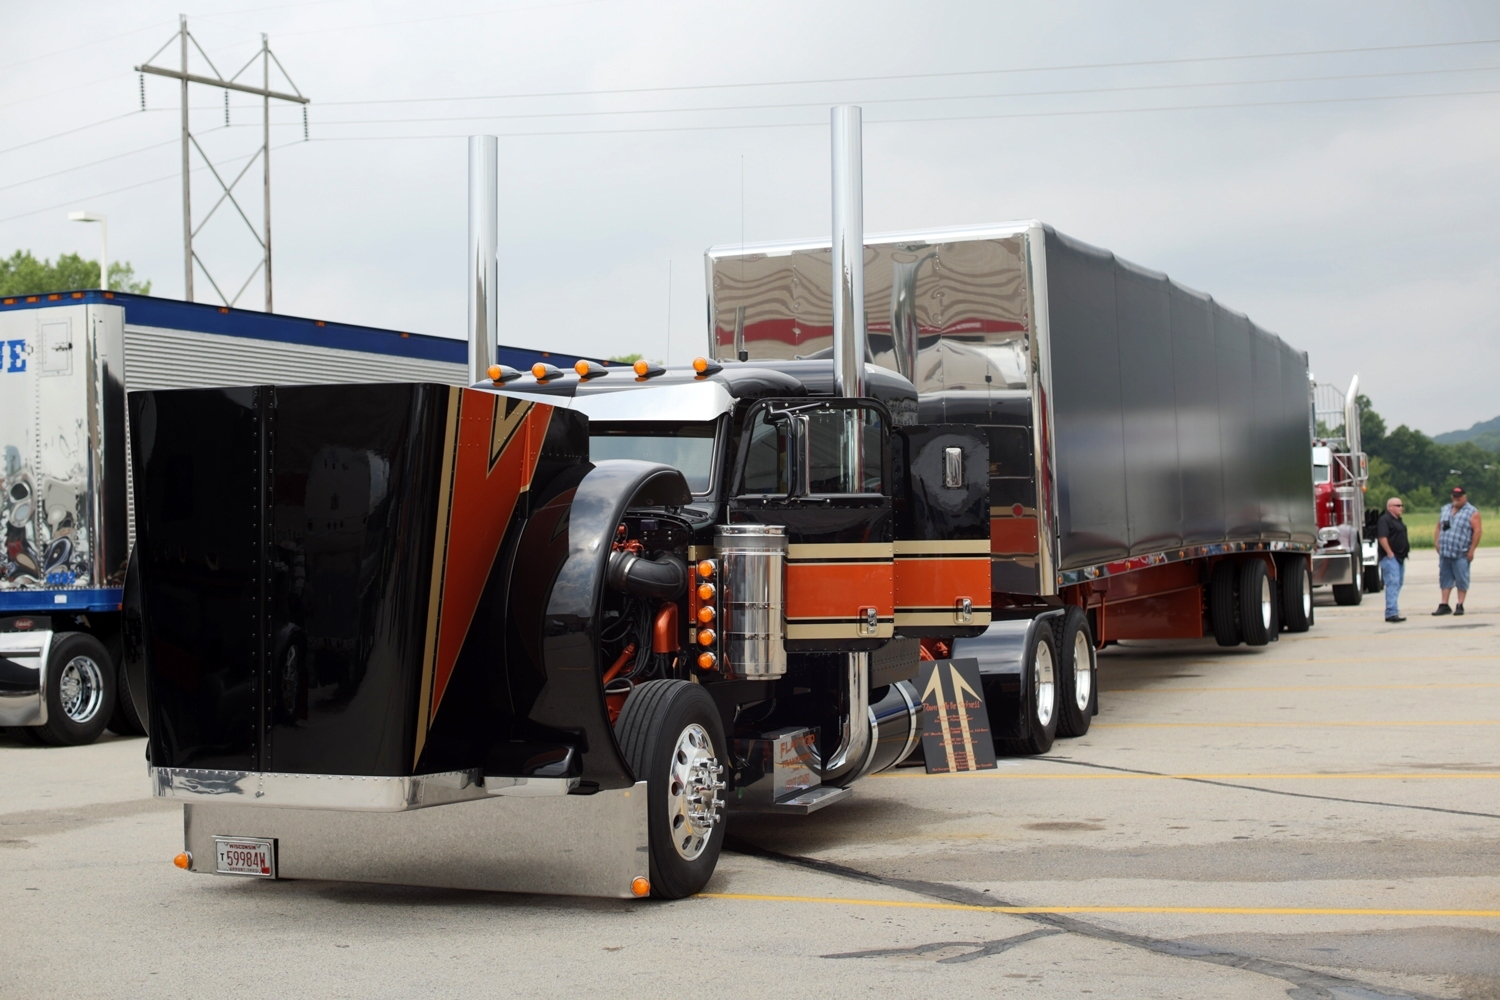 Eric Bilgo's 1995 Peterbilt 379 and MAC trailer won Best of Show in the Working Combo category.